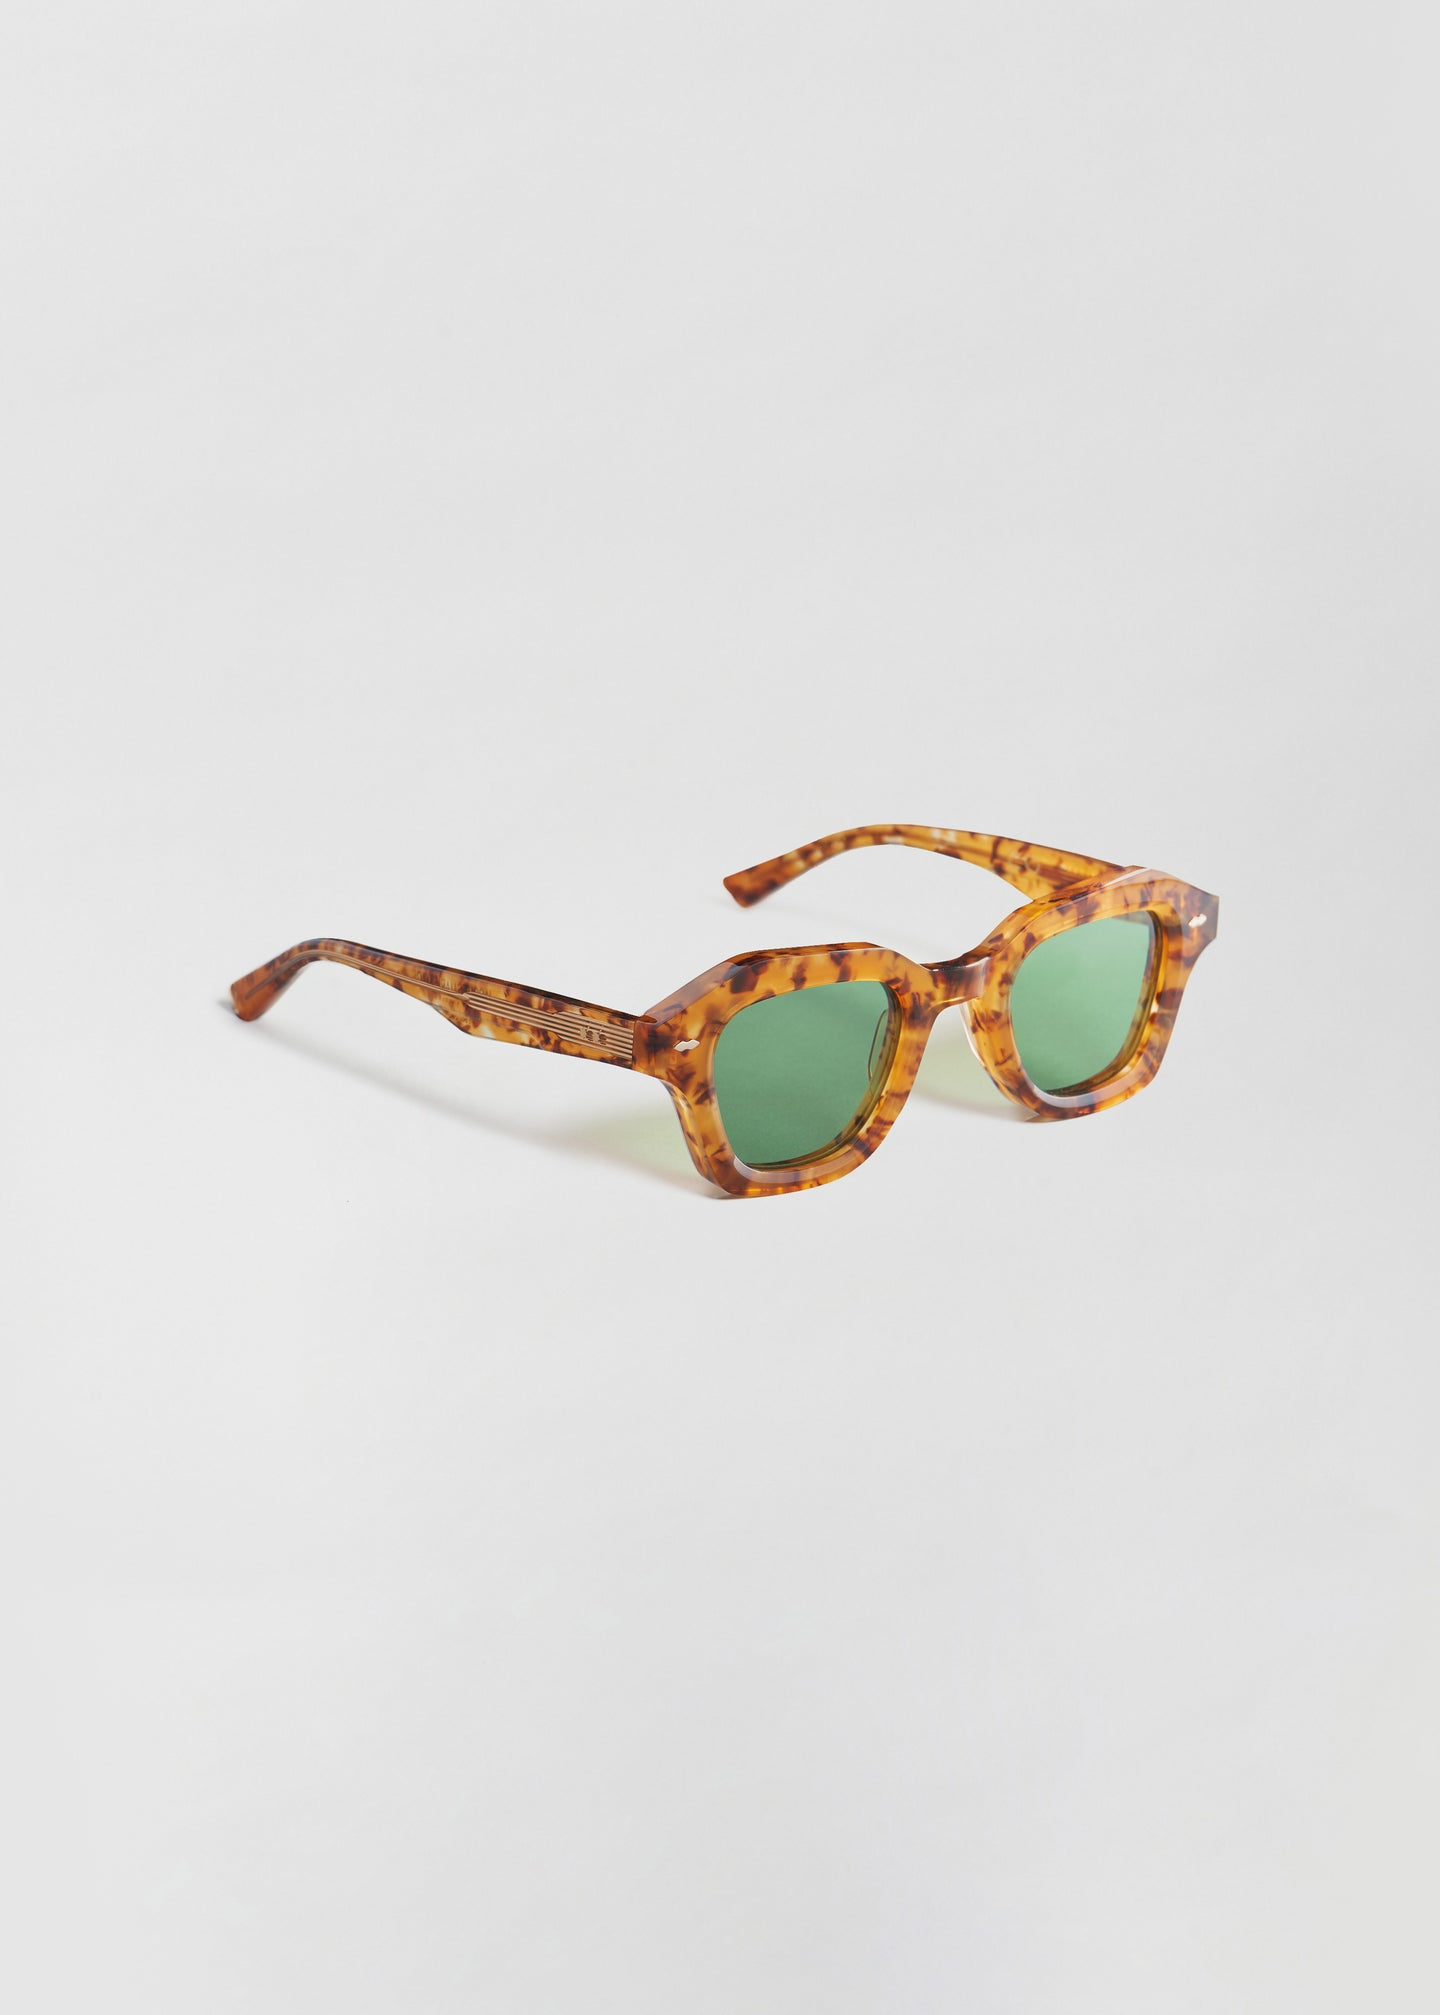 Schindler Sunglasses in Vintage Tort - CO